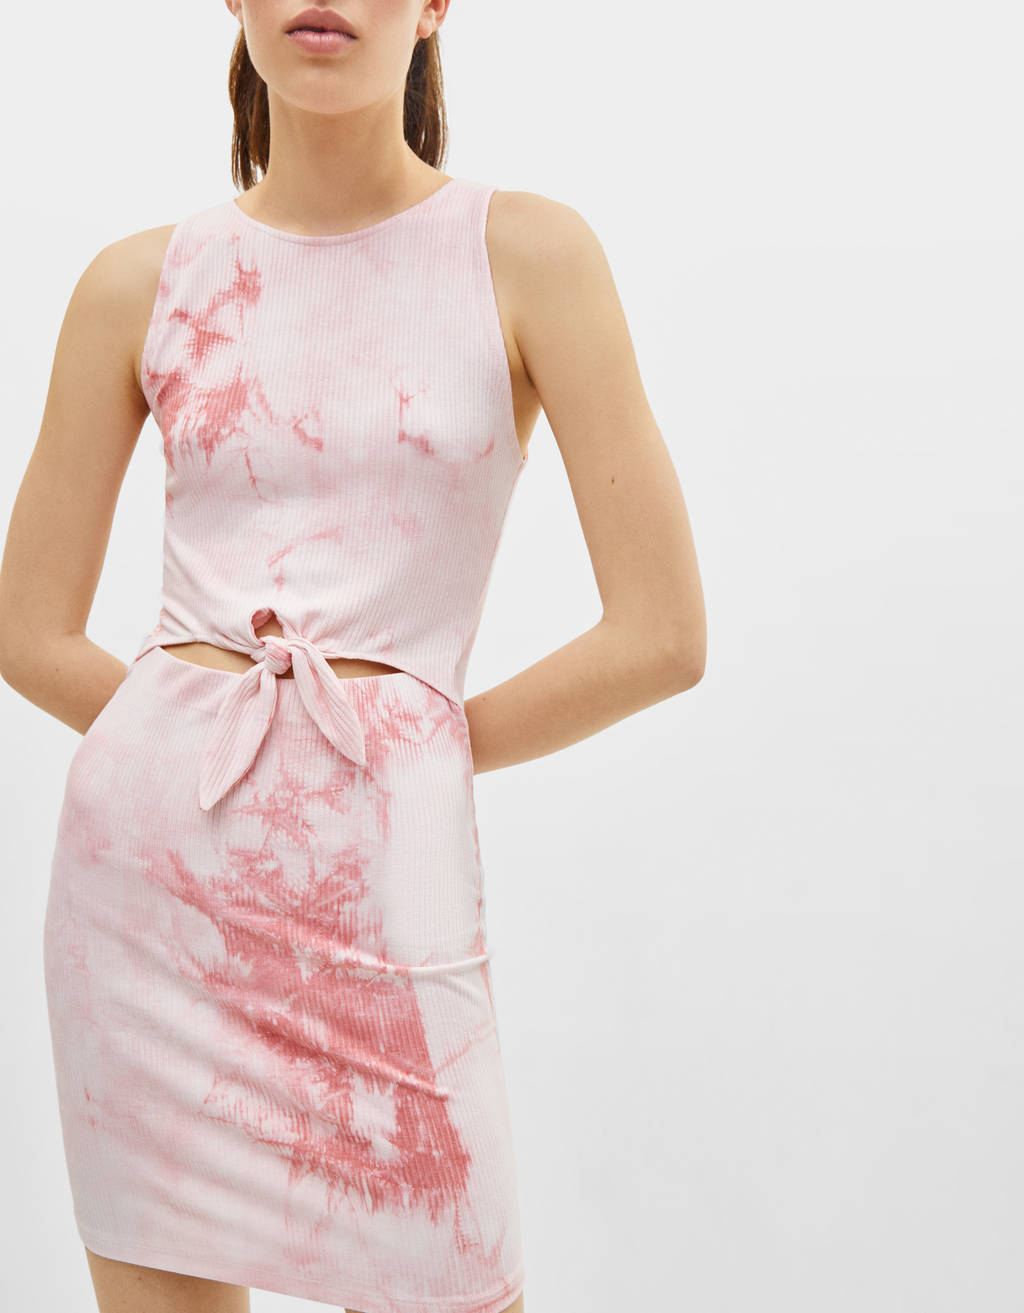 Short tie-dye dress with seam and knot